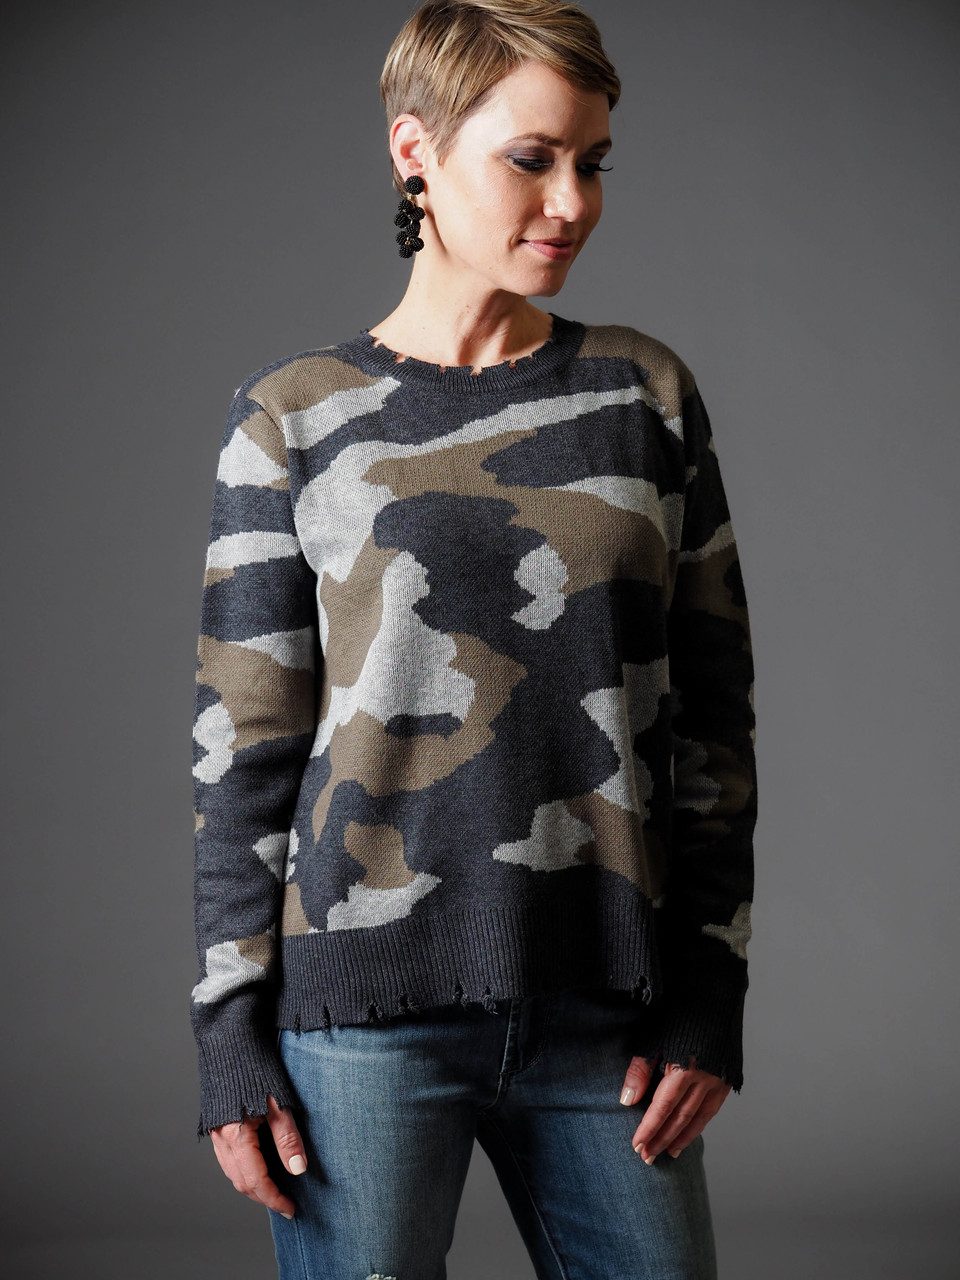 distressed green gray white camo sweater